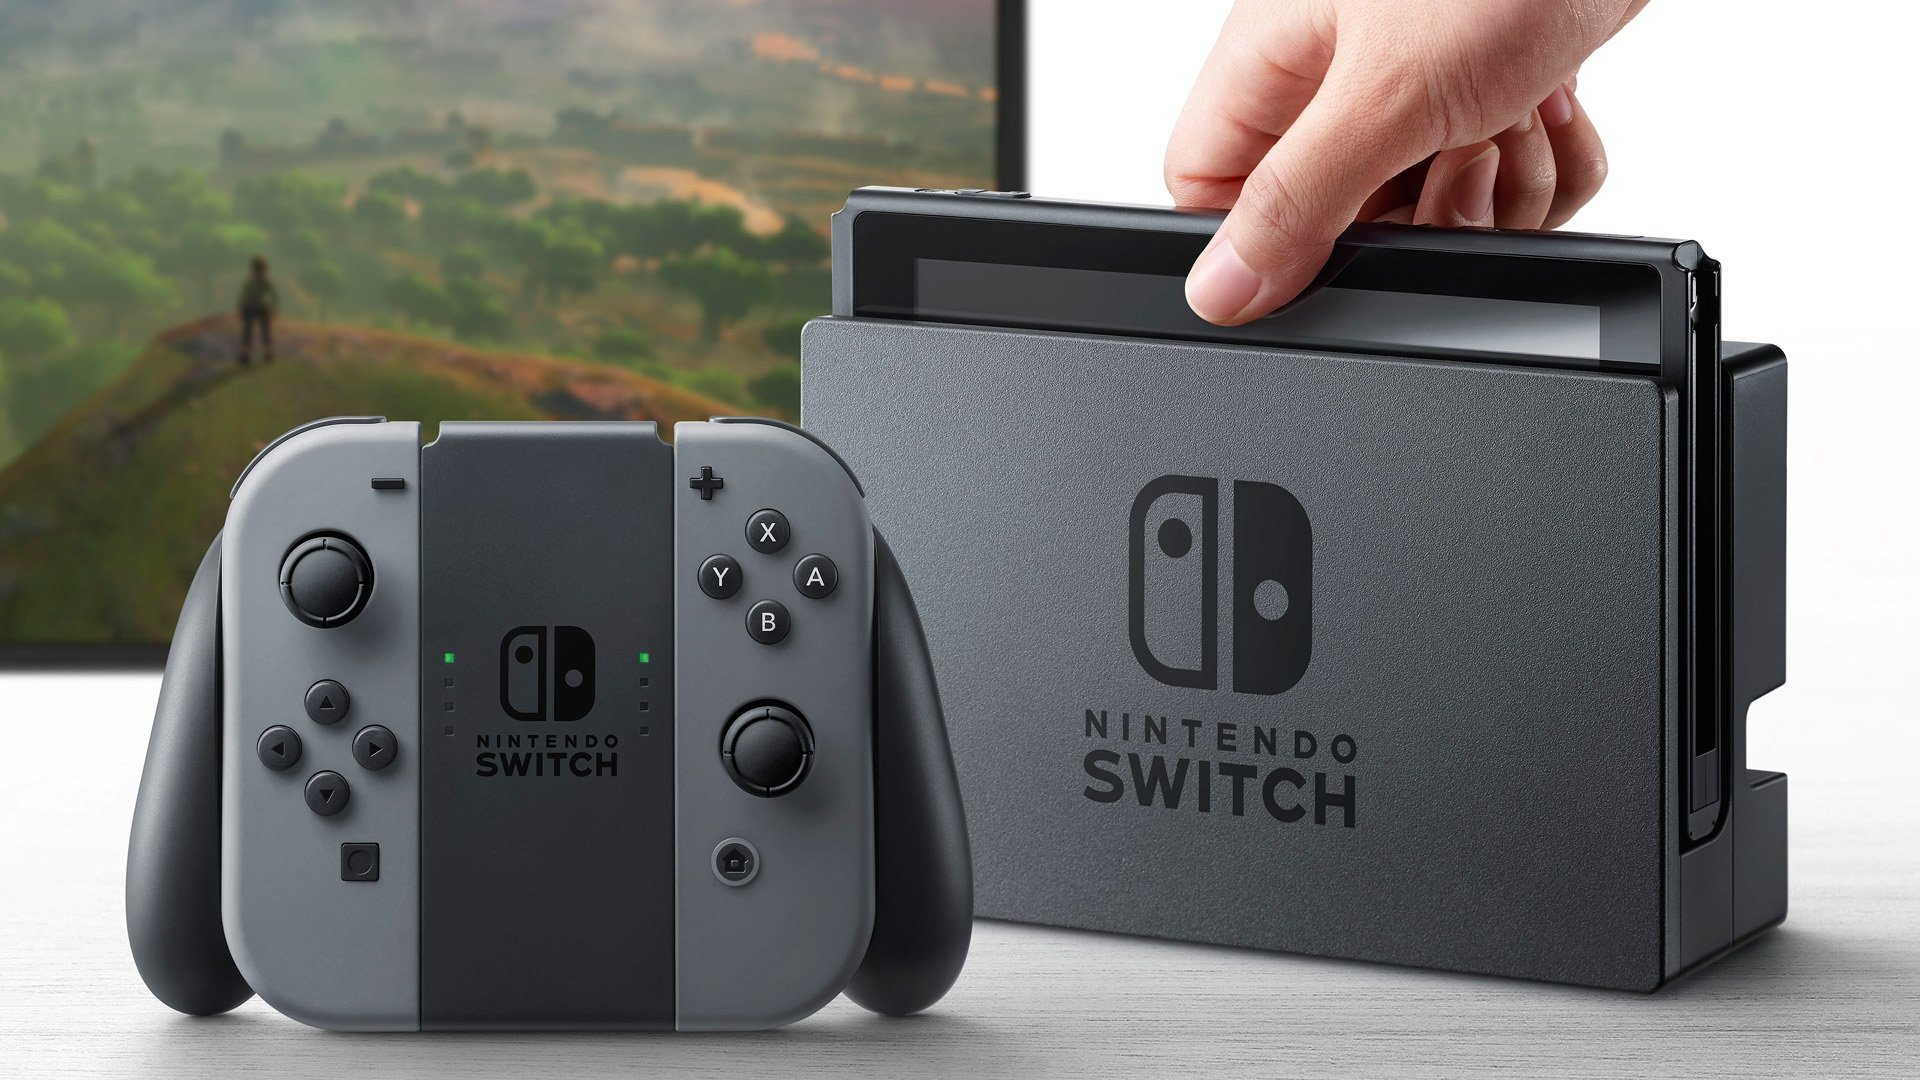 Modojo | Nintendo Doubles Production Of The Switch, Share Values Jump